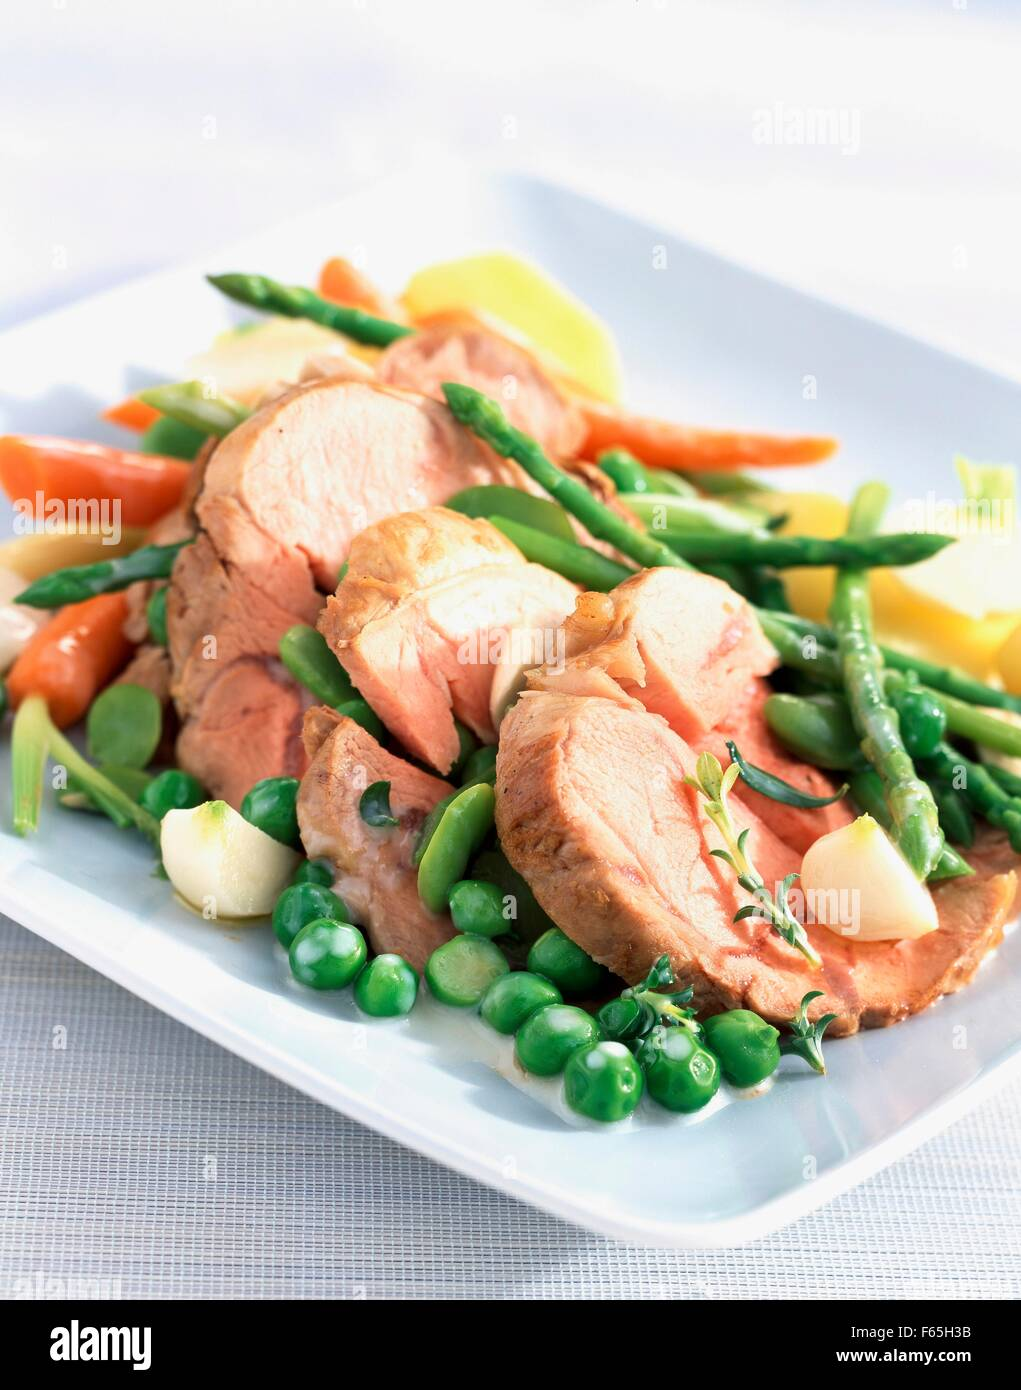 Roast veal with spring vegetables - Stock Image